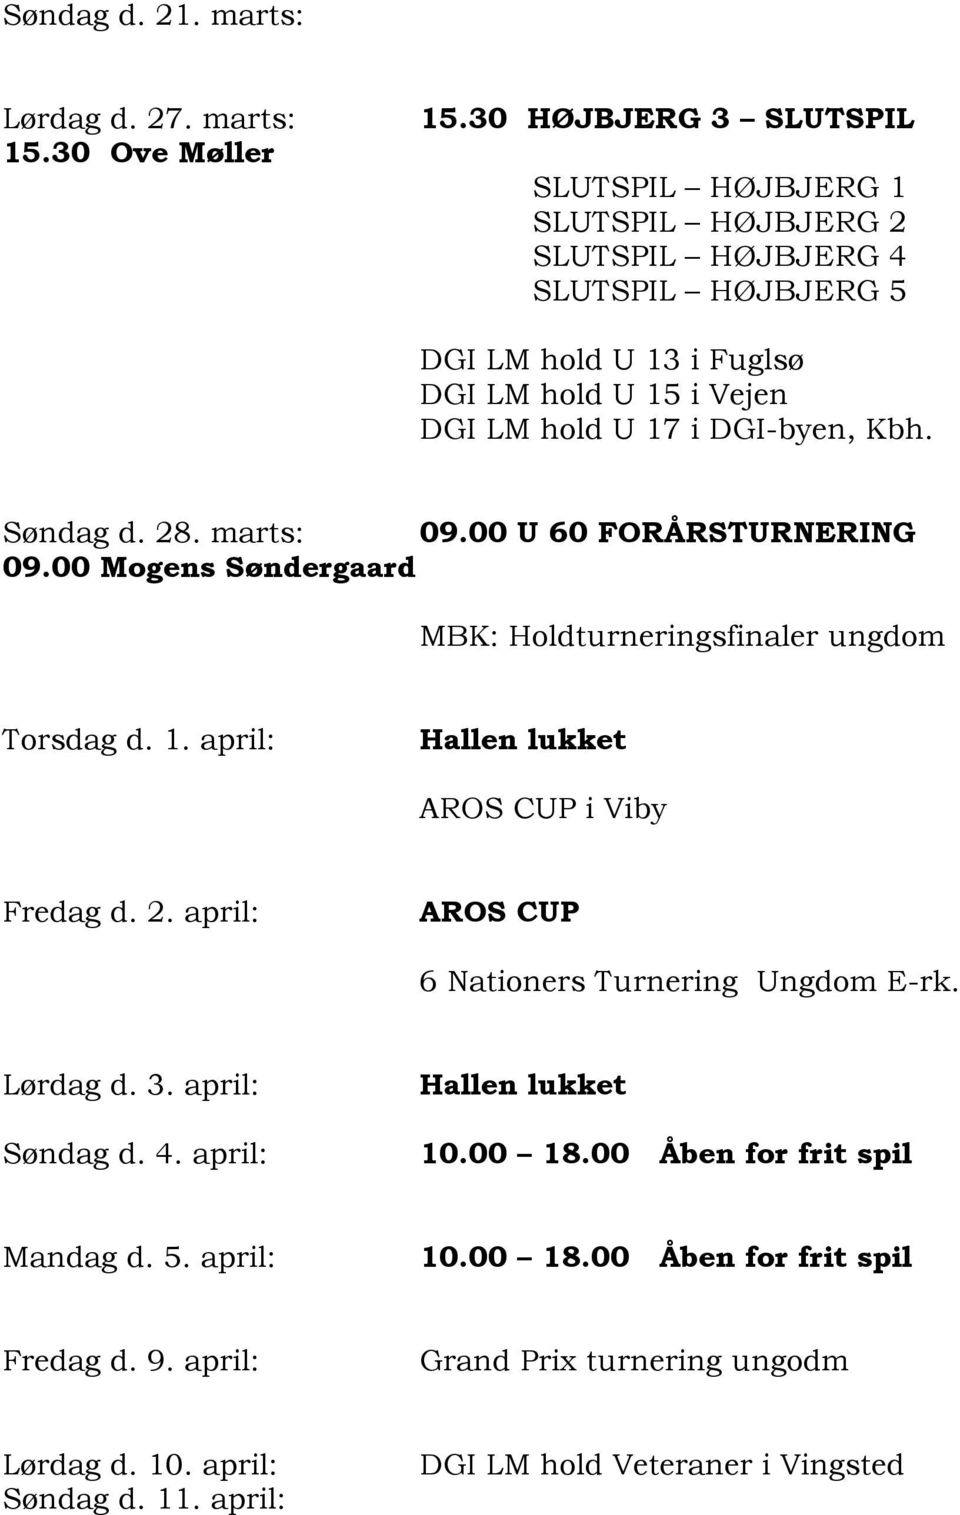 DGI-byen, Kbh. Søndag d. 28. marts: 09.00 U 60 FORÅRSTURNERING 09.00 Mogens Søndergaard MBK: Holdturneringsfinaler ungdom Torsdag d. 1. april: AROS CUP i Viby Fredag d. 2. april: AROS CUP 6 Nationers Turnering Ungdom E-rk.